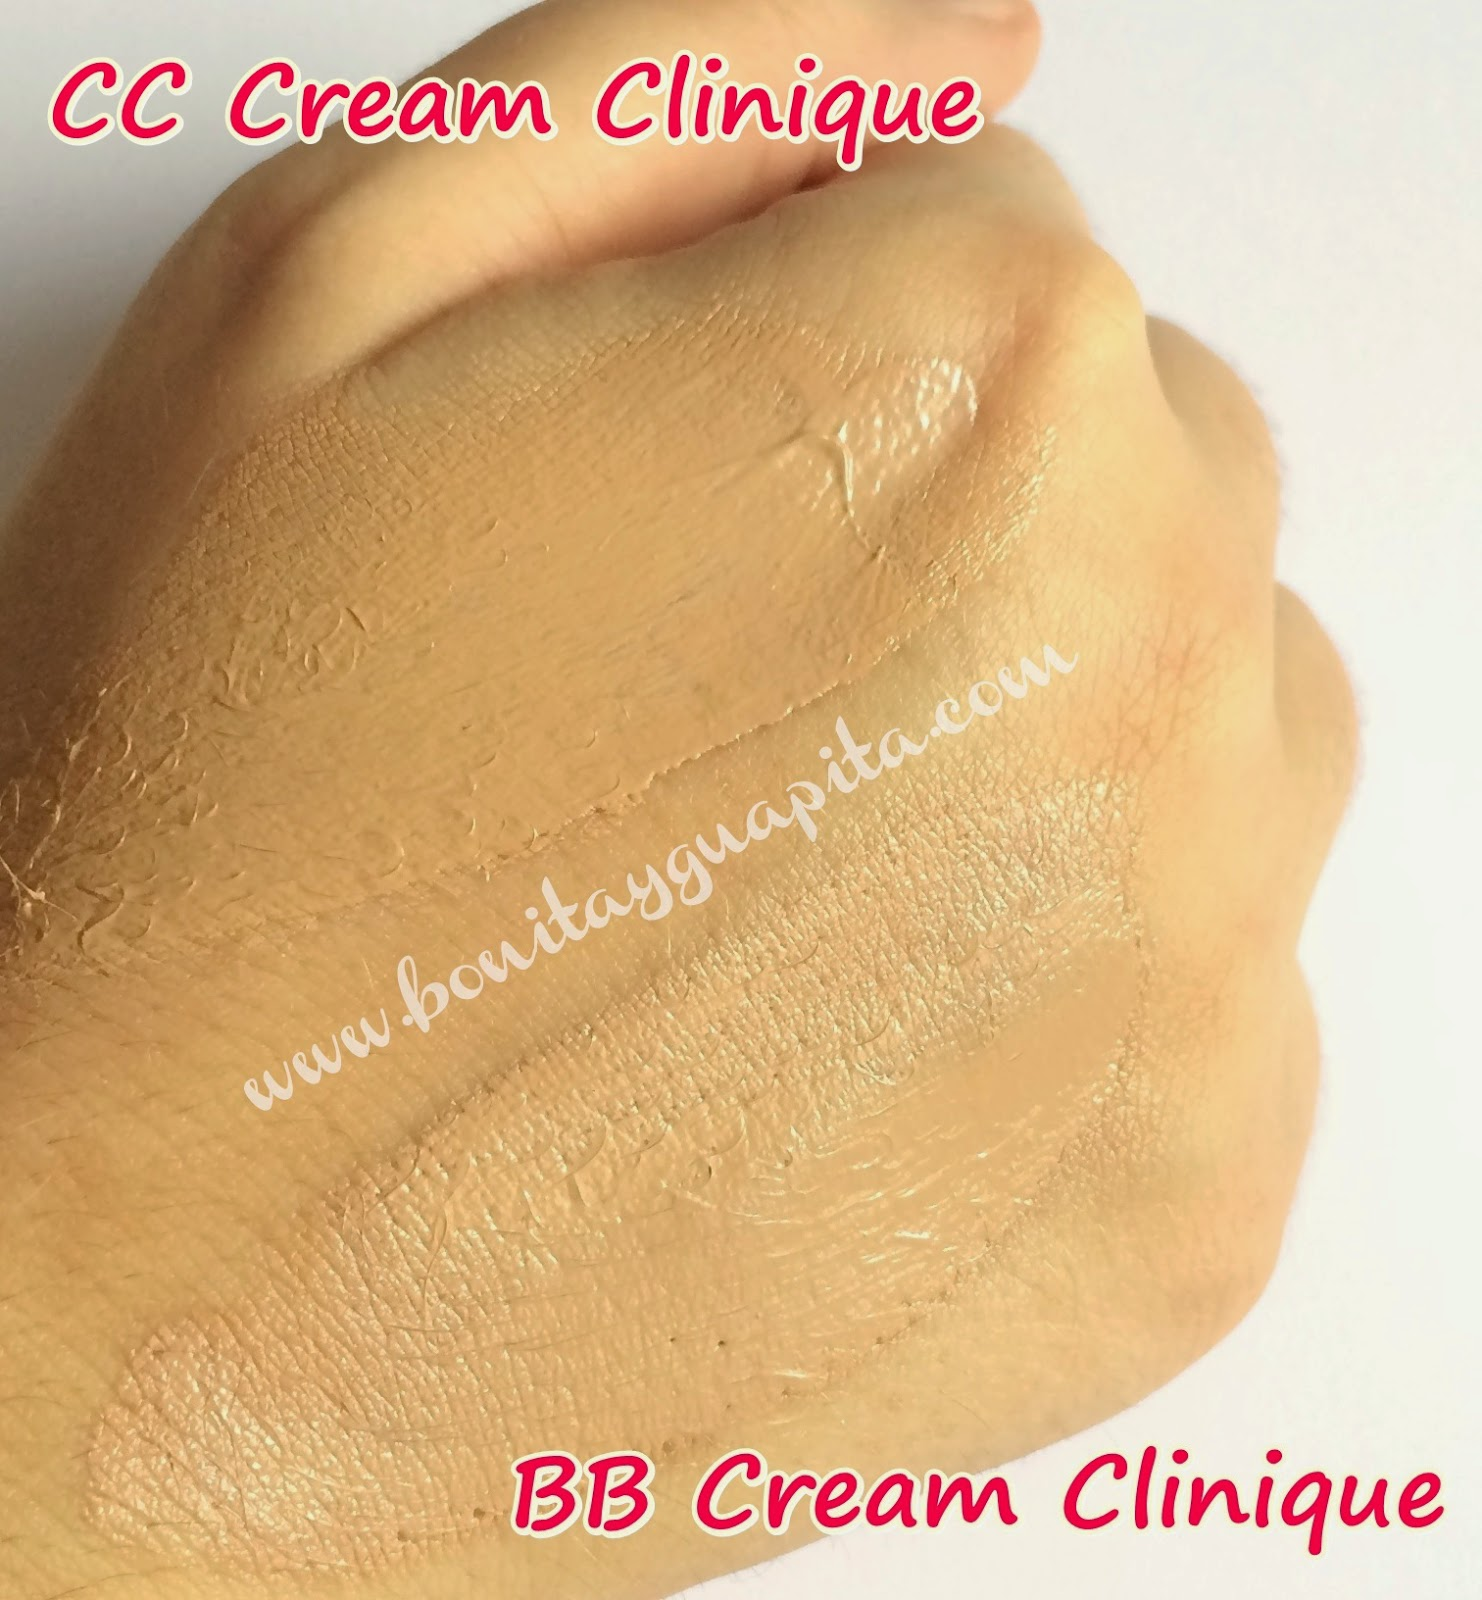 bb cream cc cream clinique